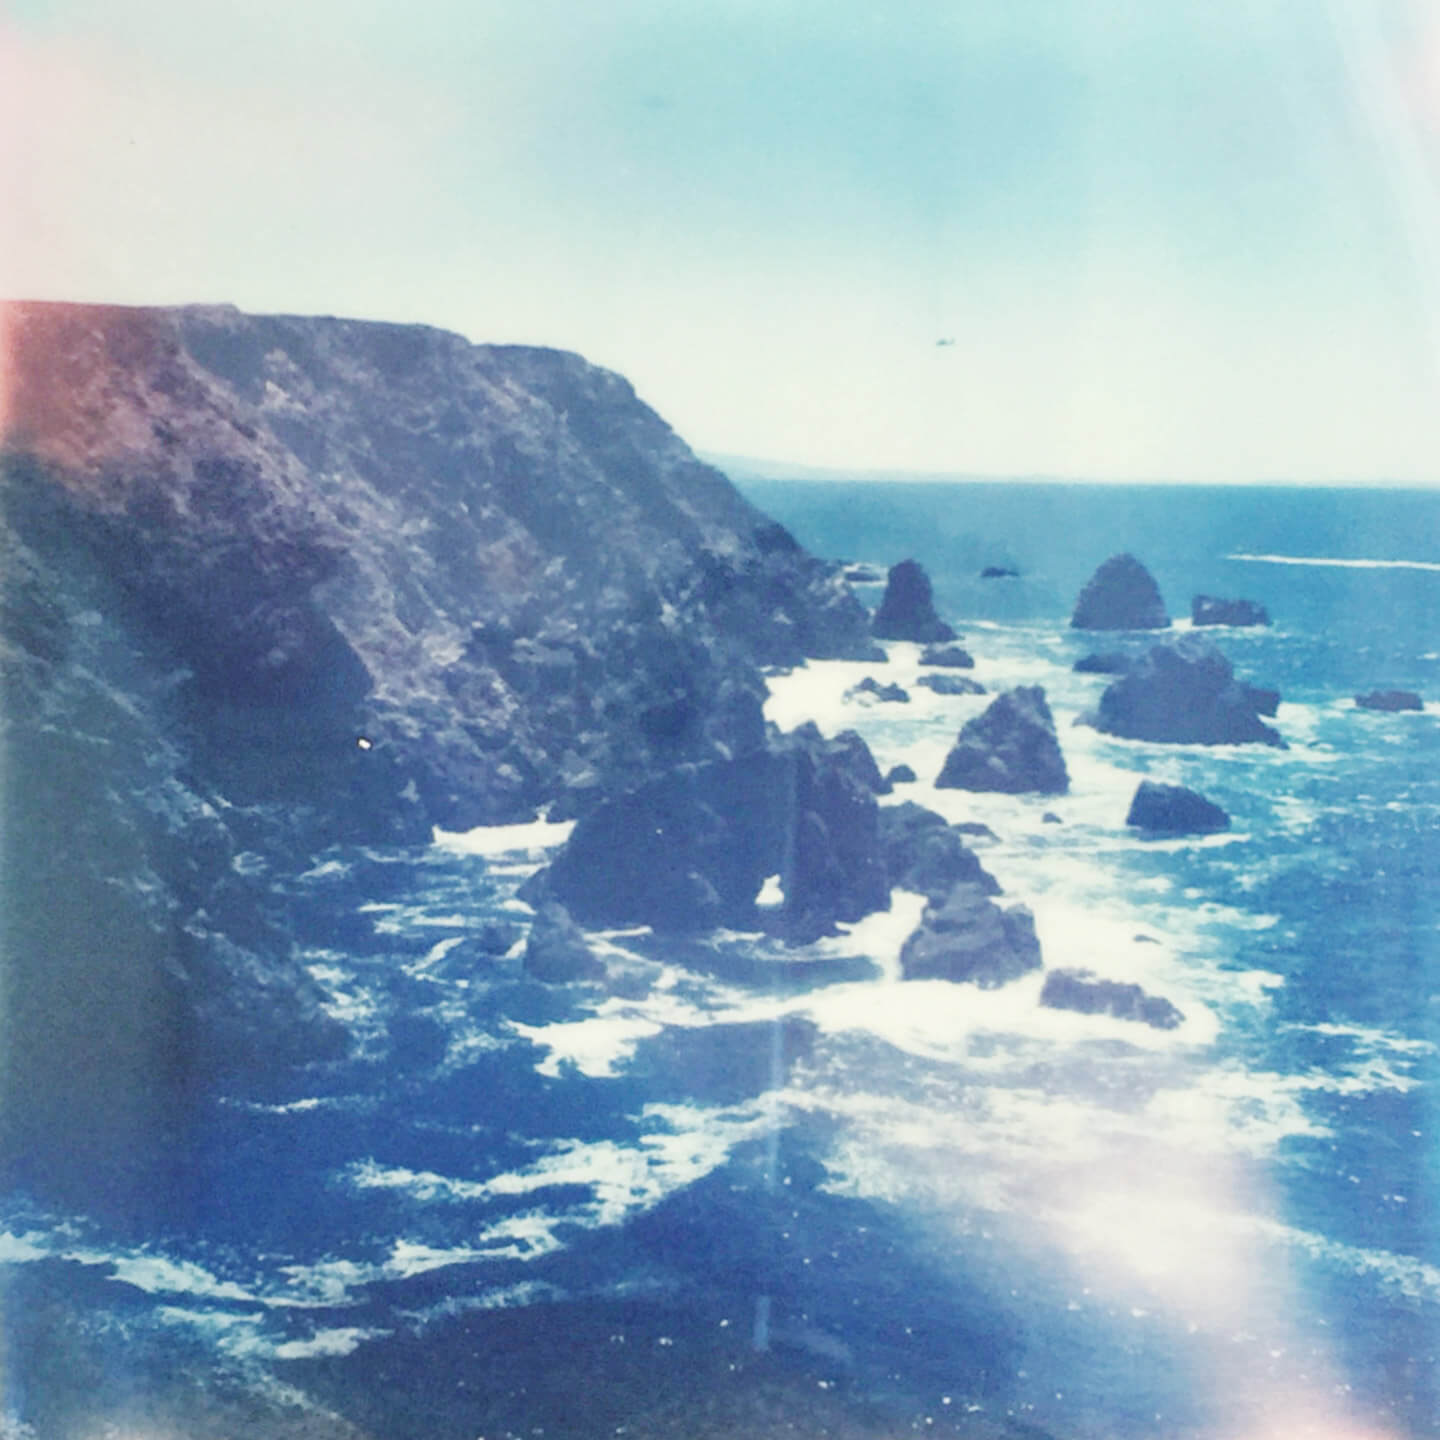 Polaroid of ocean coastline by The Qurious Effect | A Squarespace Web Design Studio